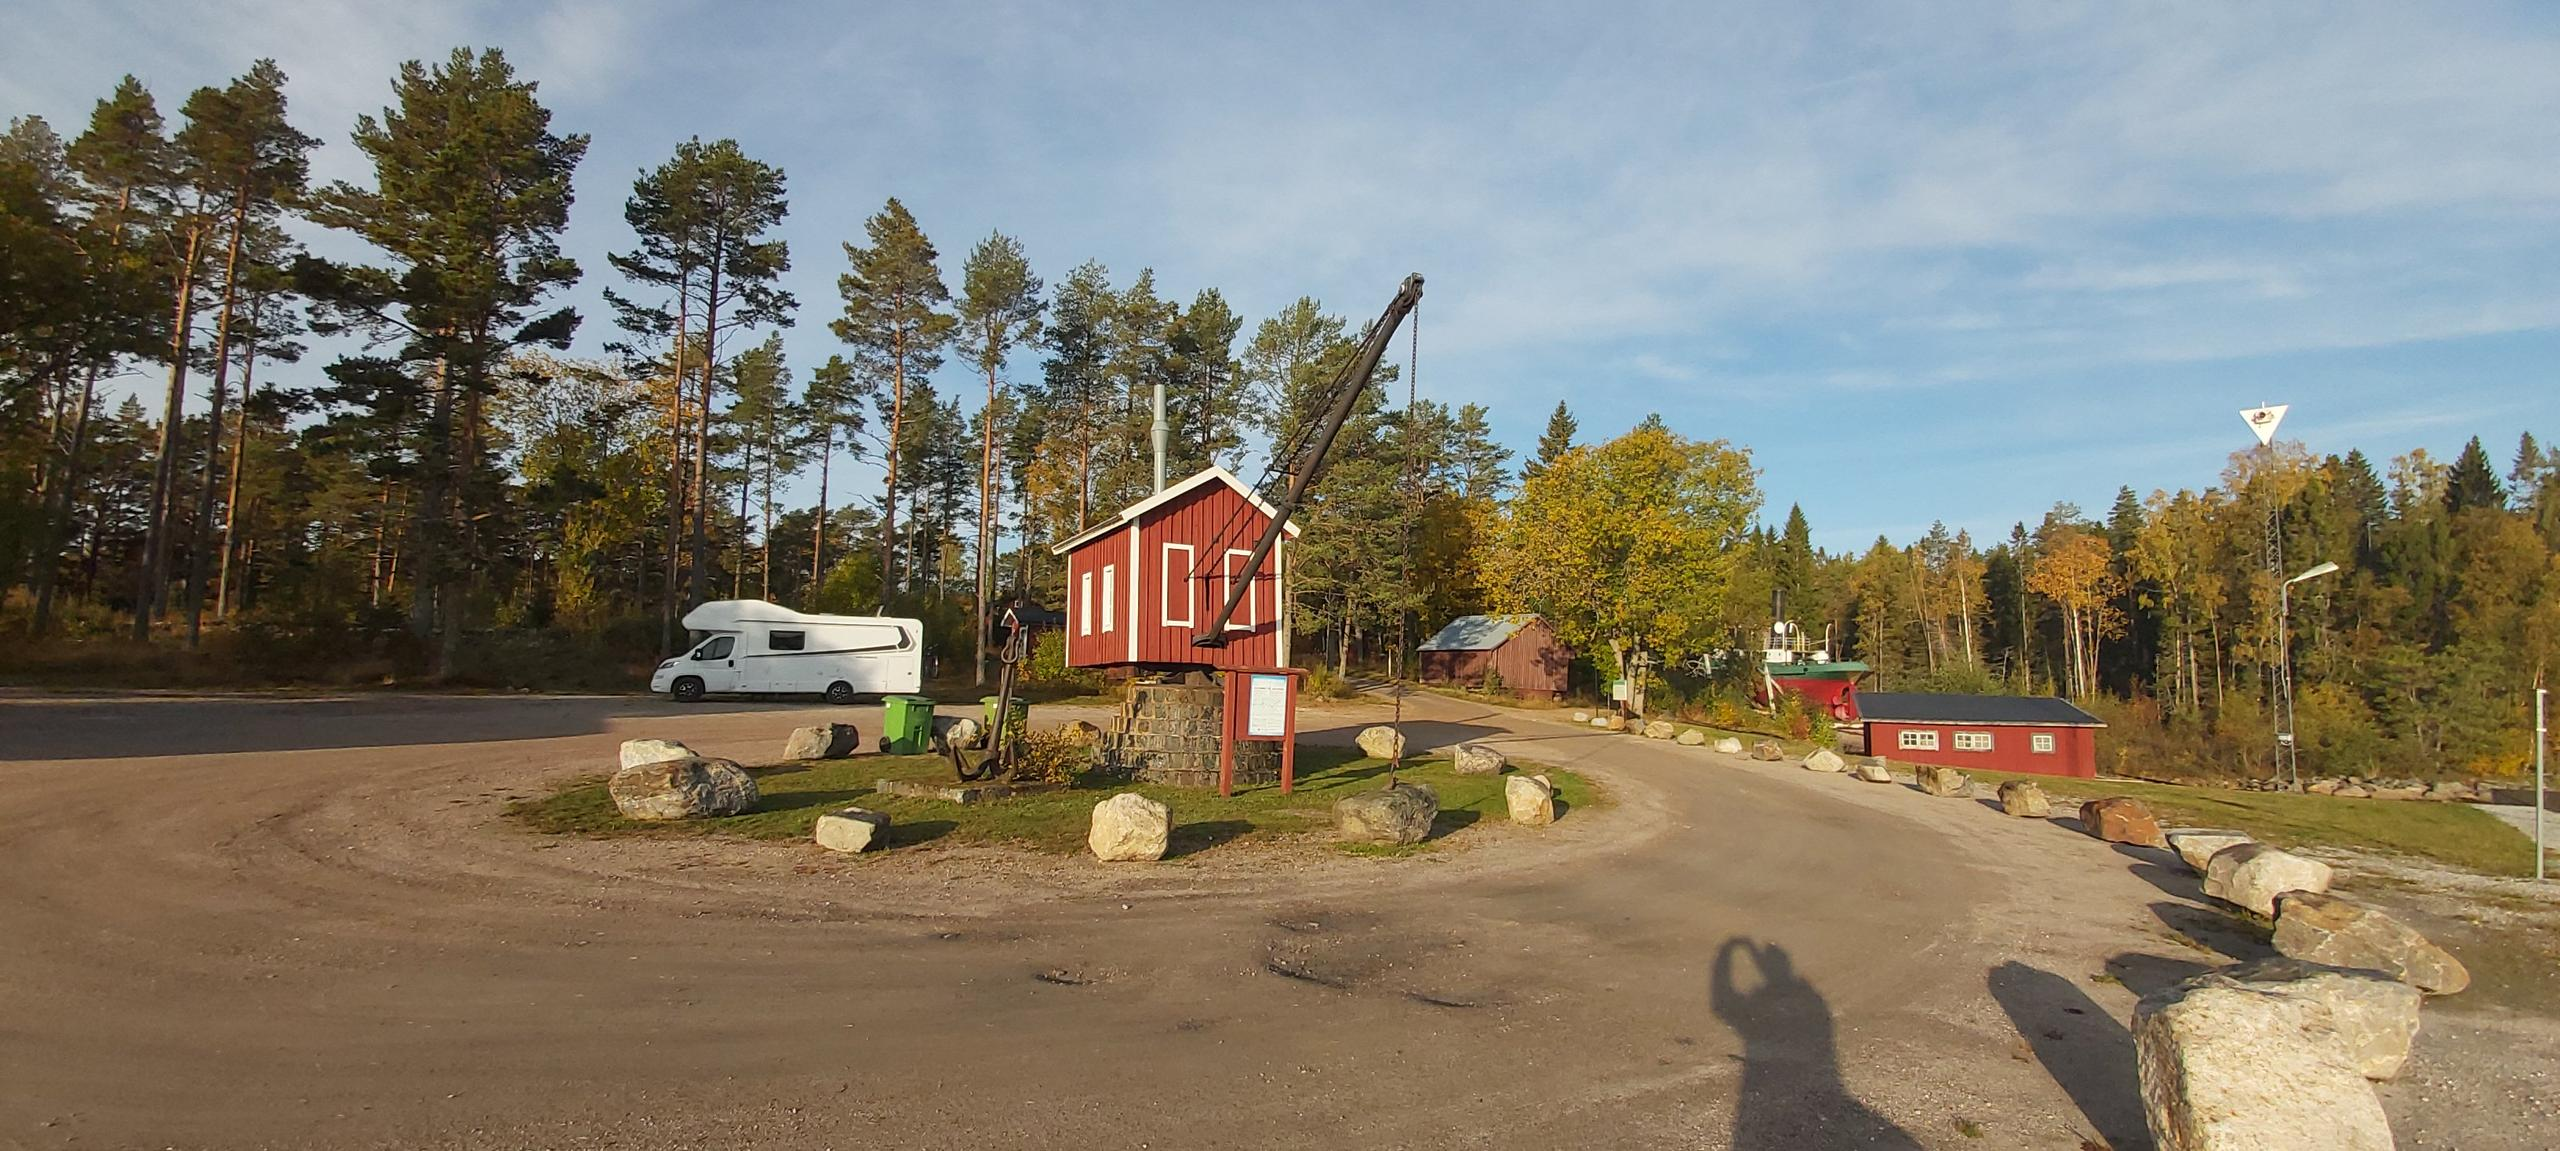 Sandvikens Camping & Stugby